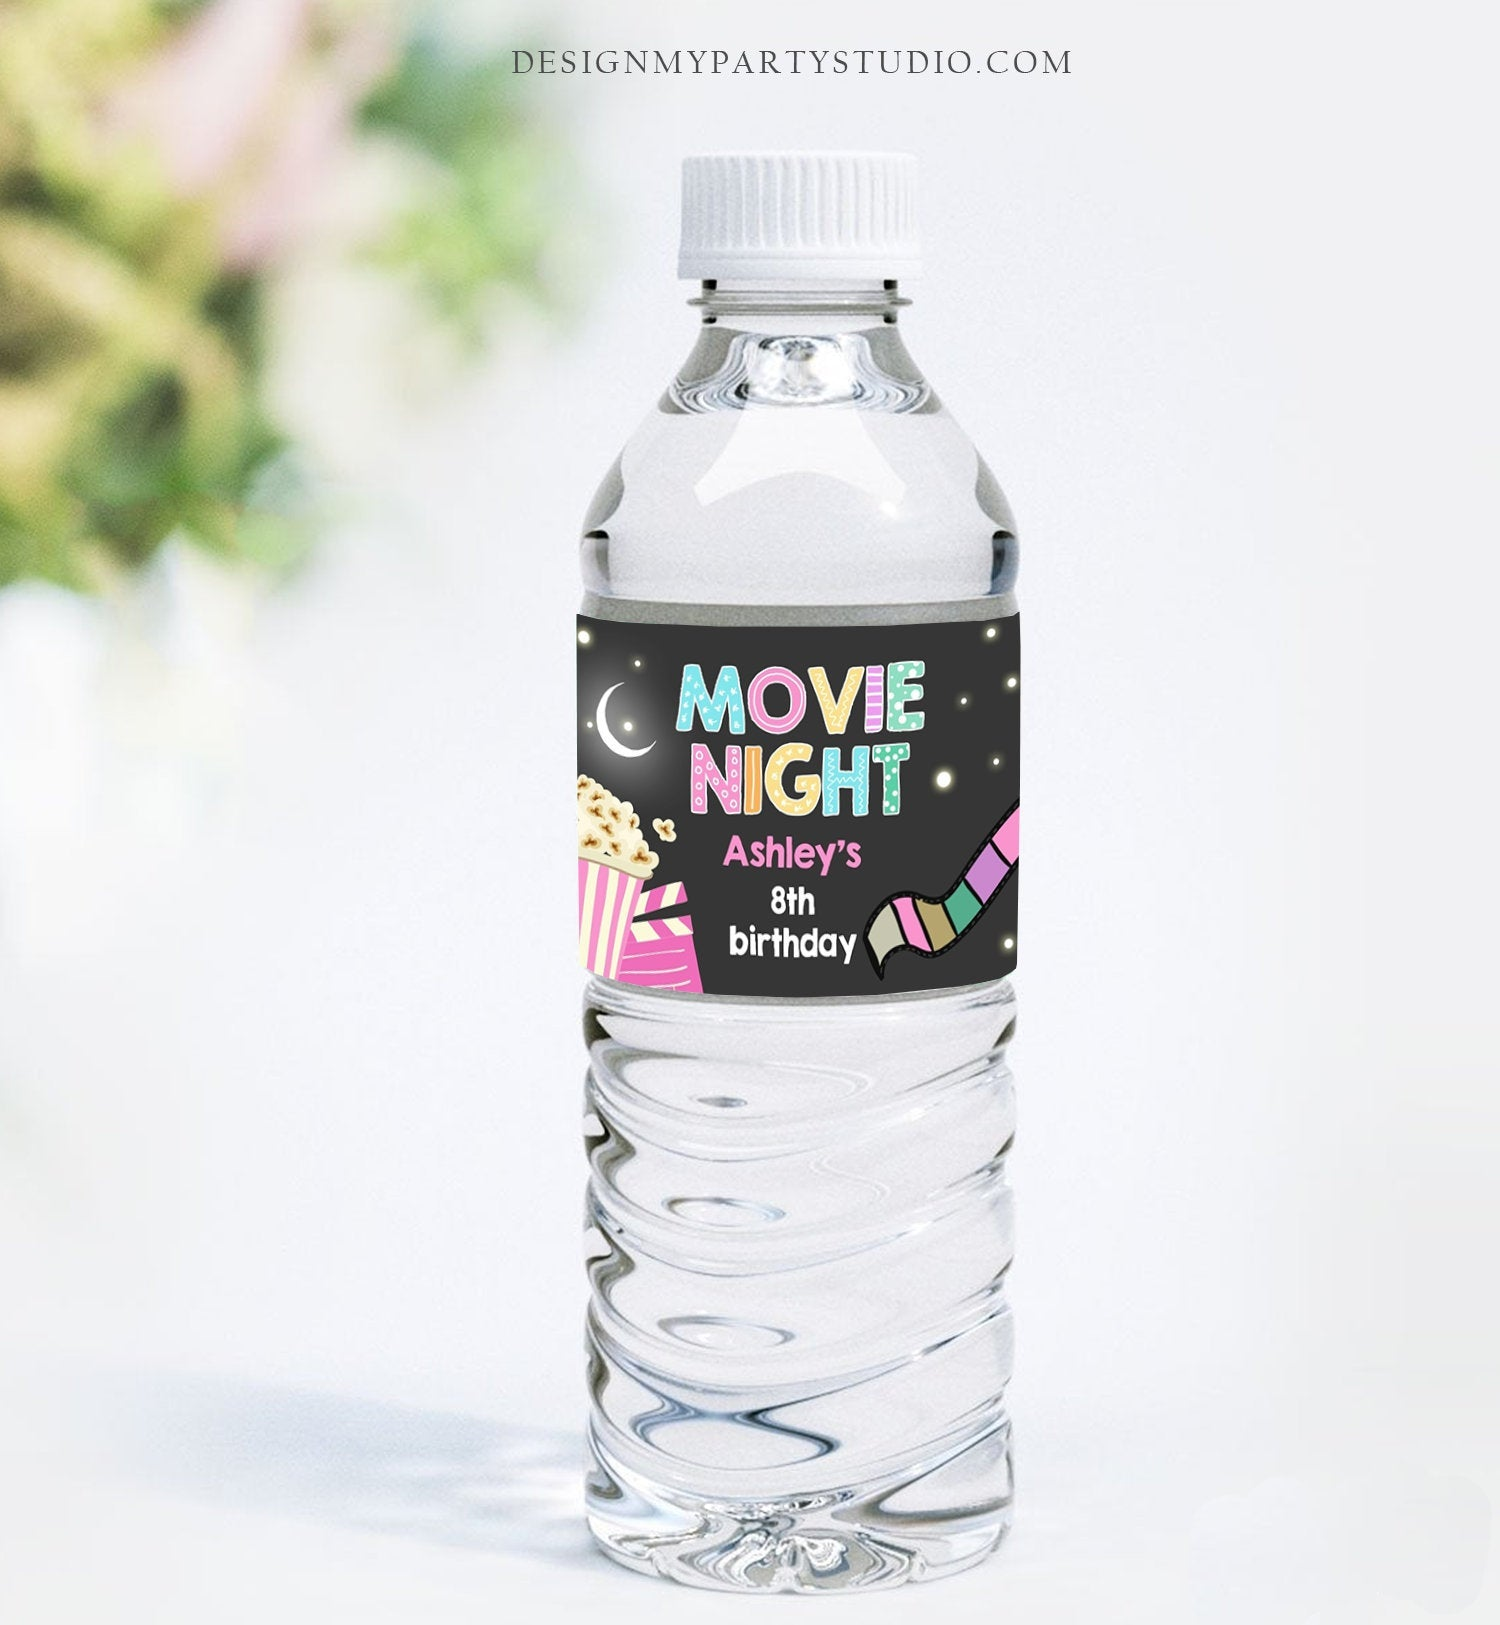 Editable Water Bottle Labels Move Night Girl Birthday Backyard Movie Party Popcorn Pink Slumber Printable Bottle Labels Template Corjl 0042